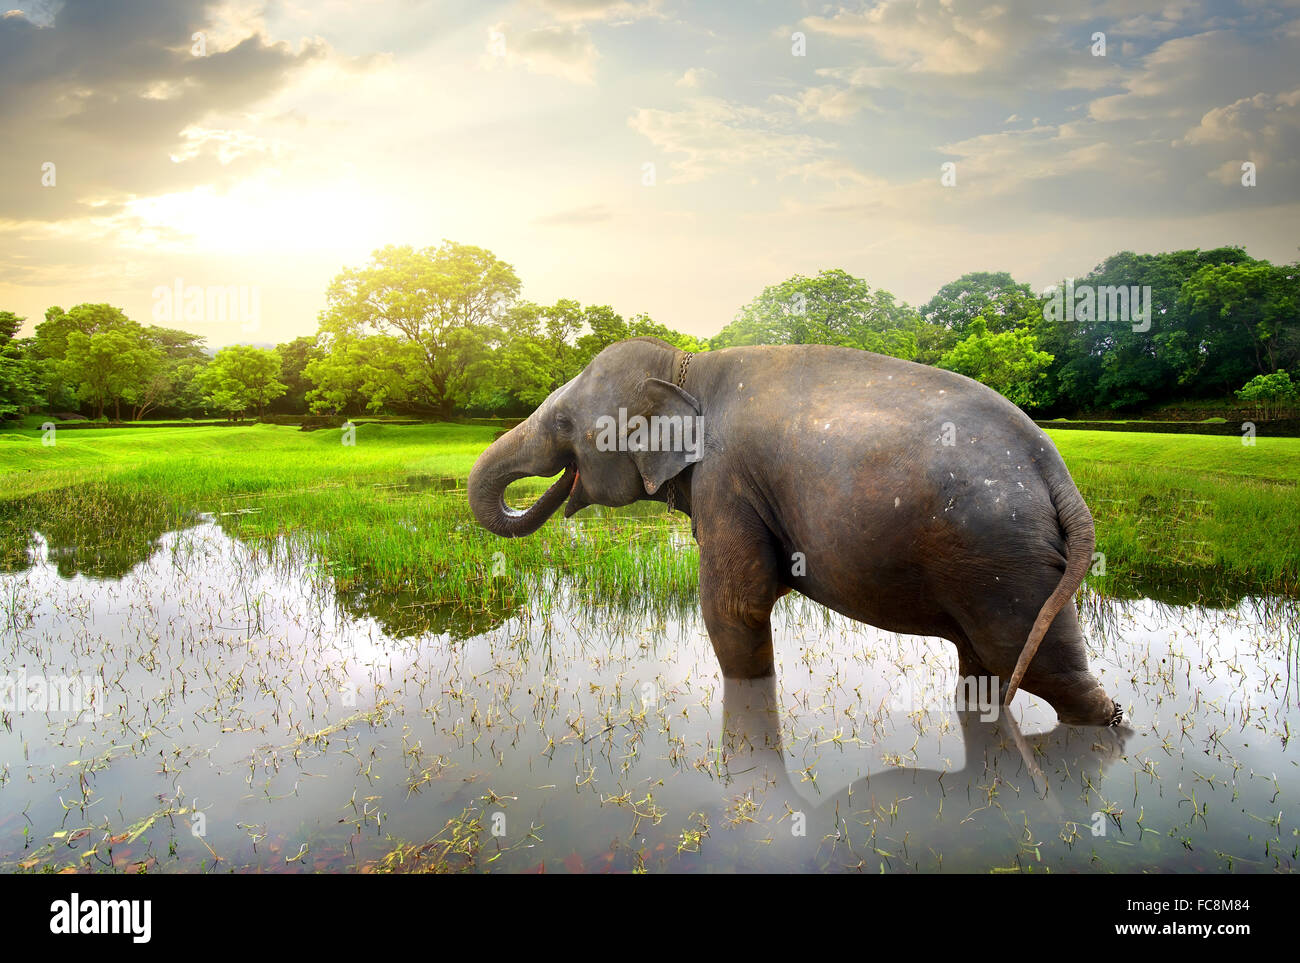 Elephant, bathing in lake near green trees - Stock Image